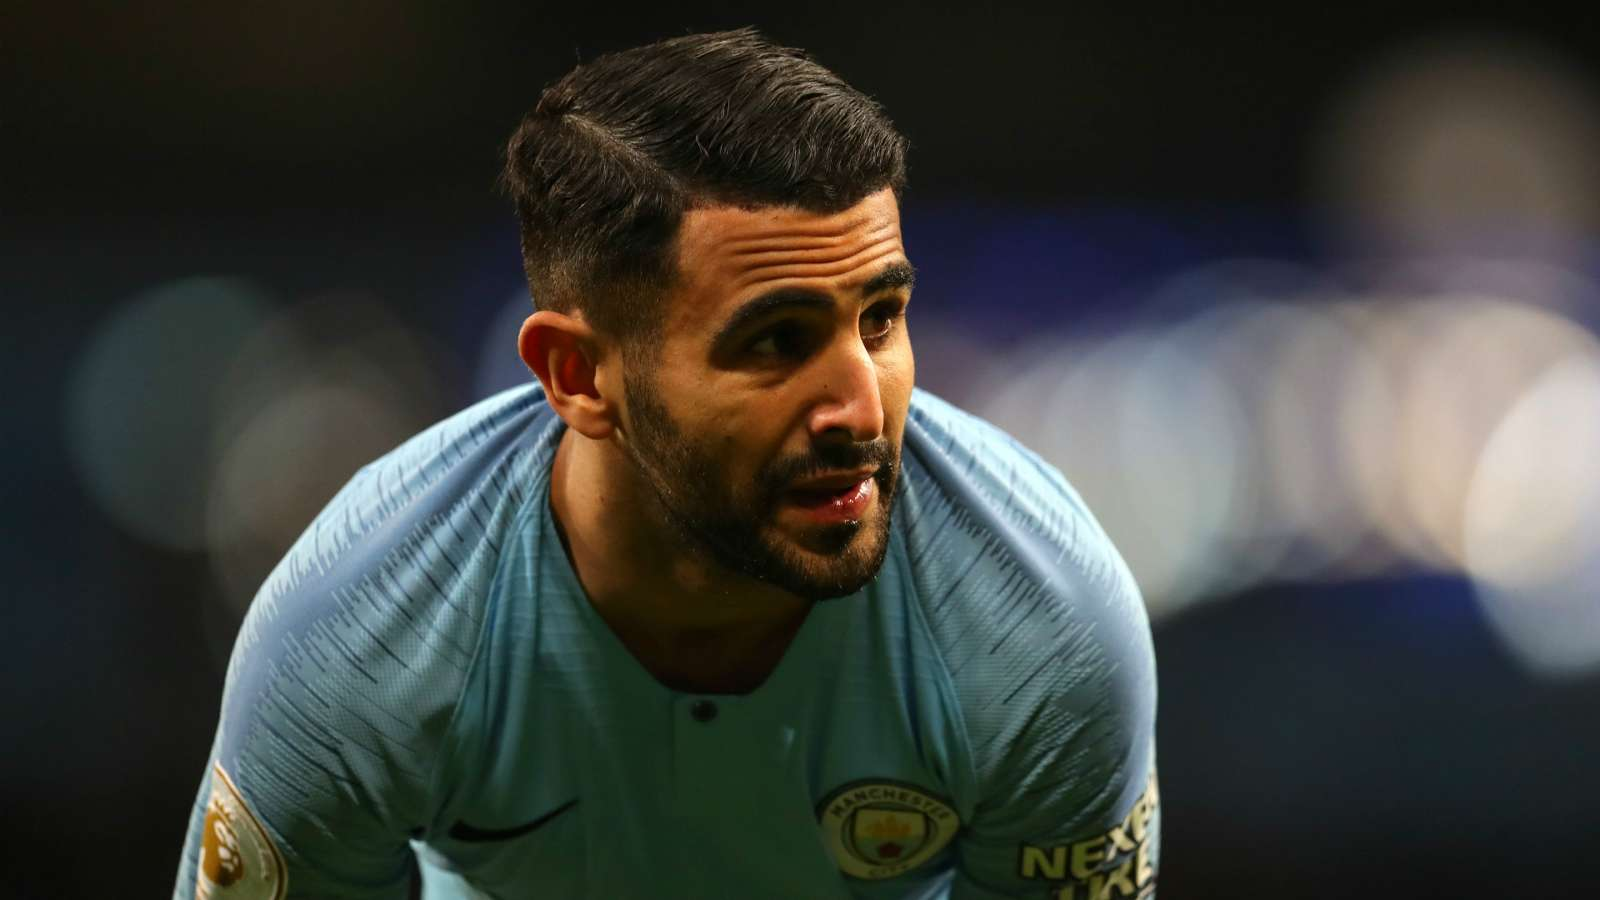 Mahrez cleared to play after passing doping test